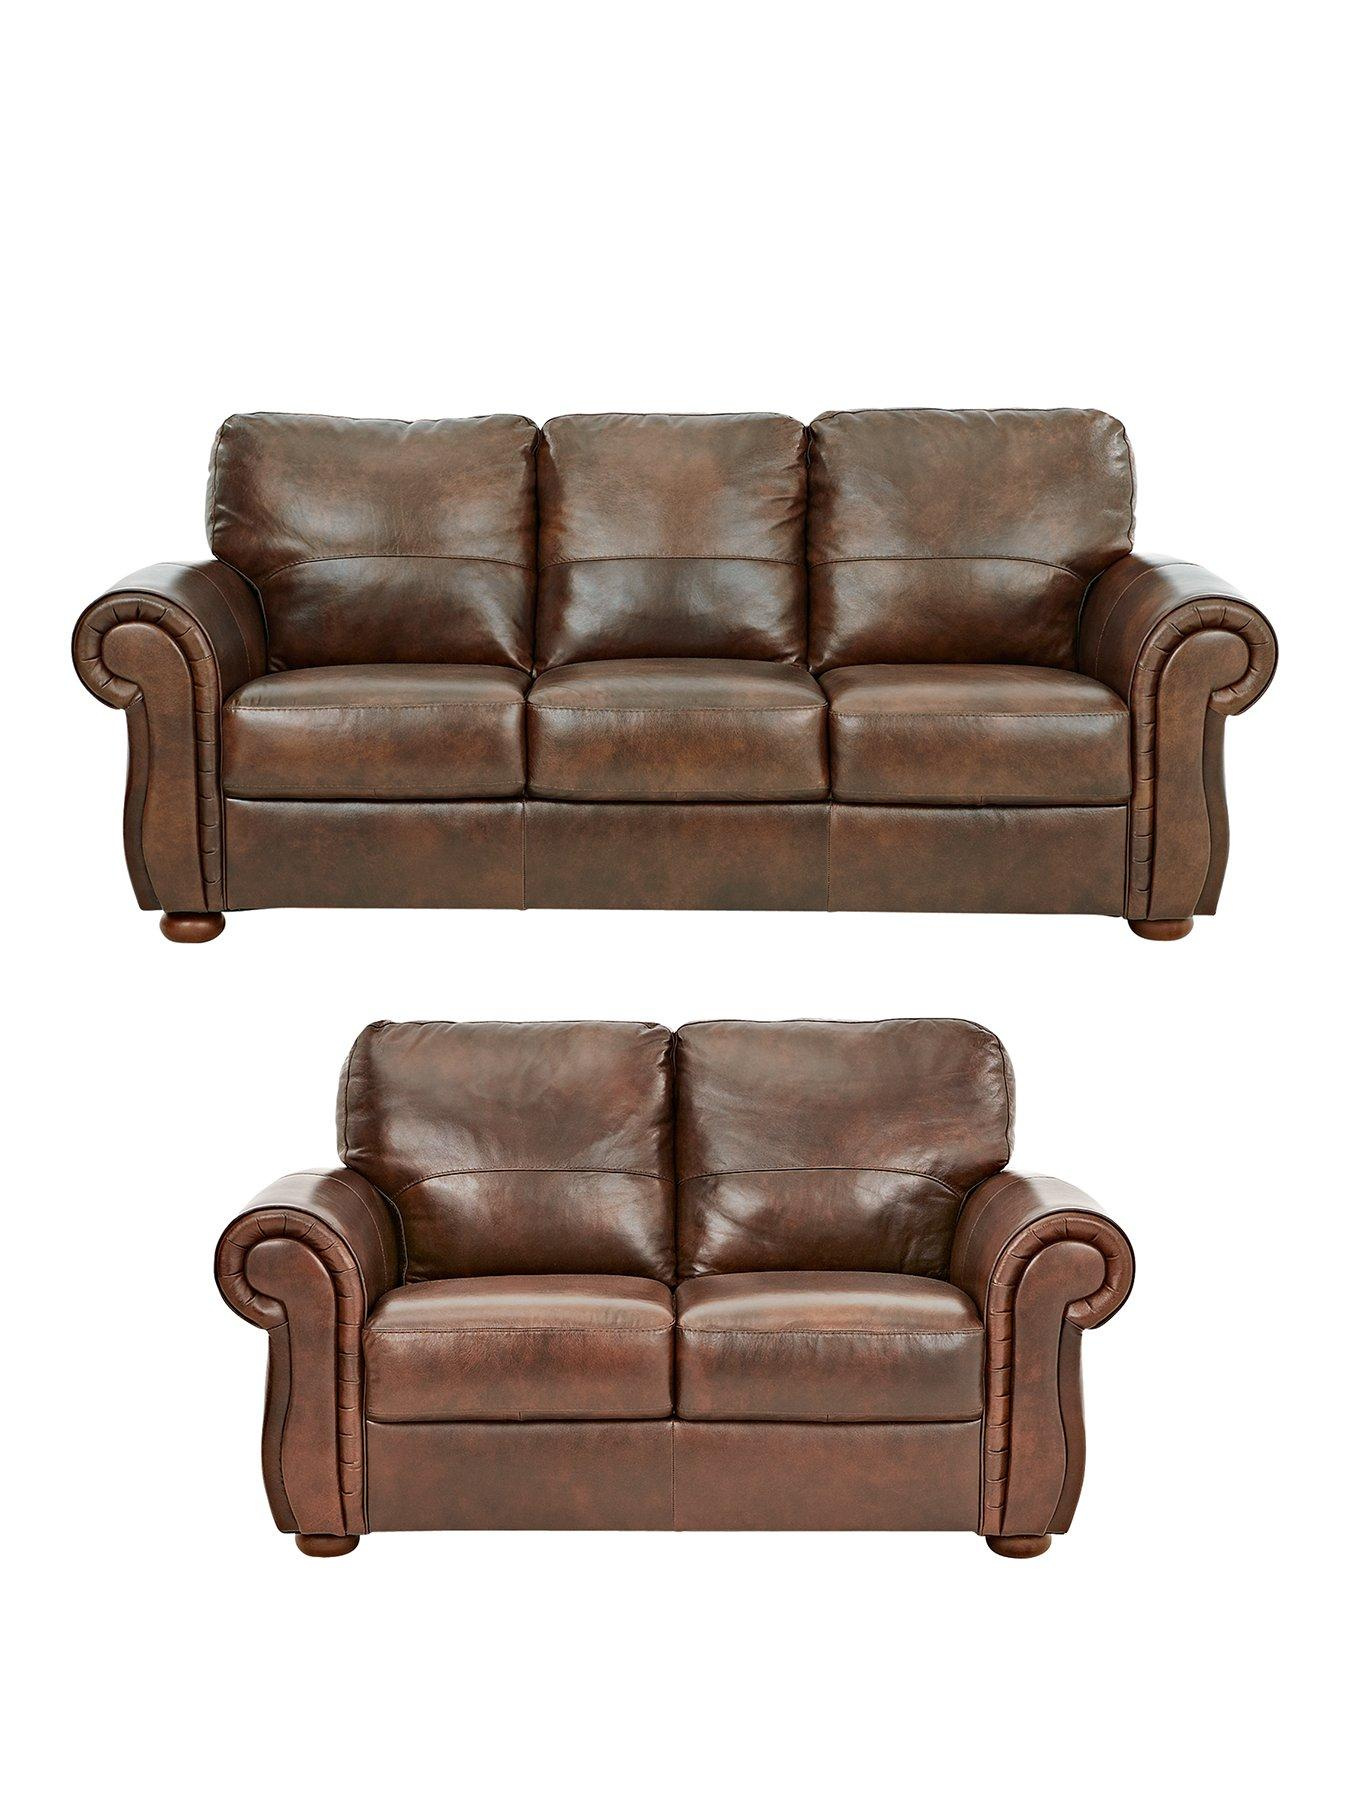 Cassina 3Seater 2Seater Italian Leather Sofa Set buy and SAVE